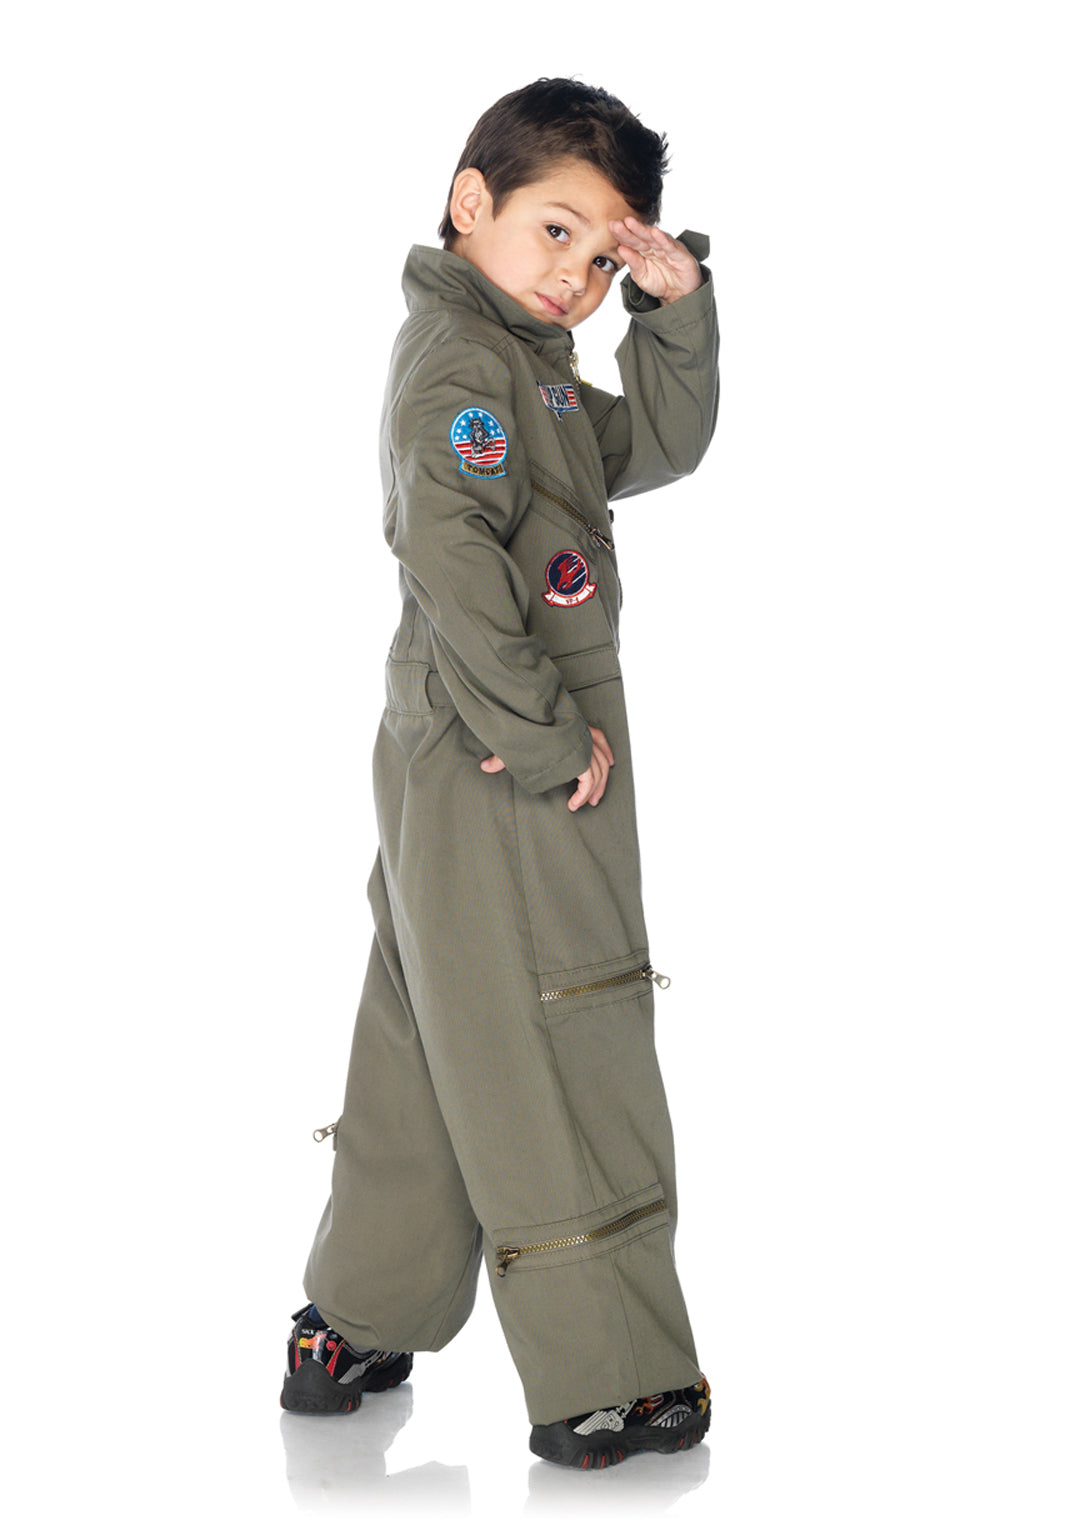 Top Gun Boys Flight Suit